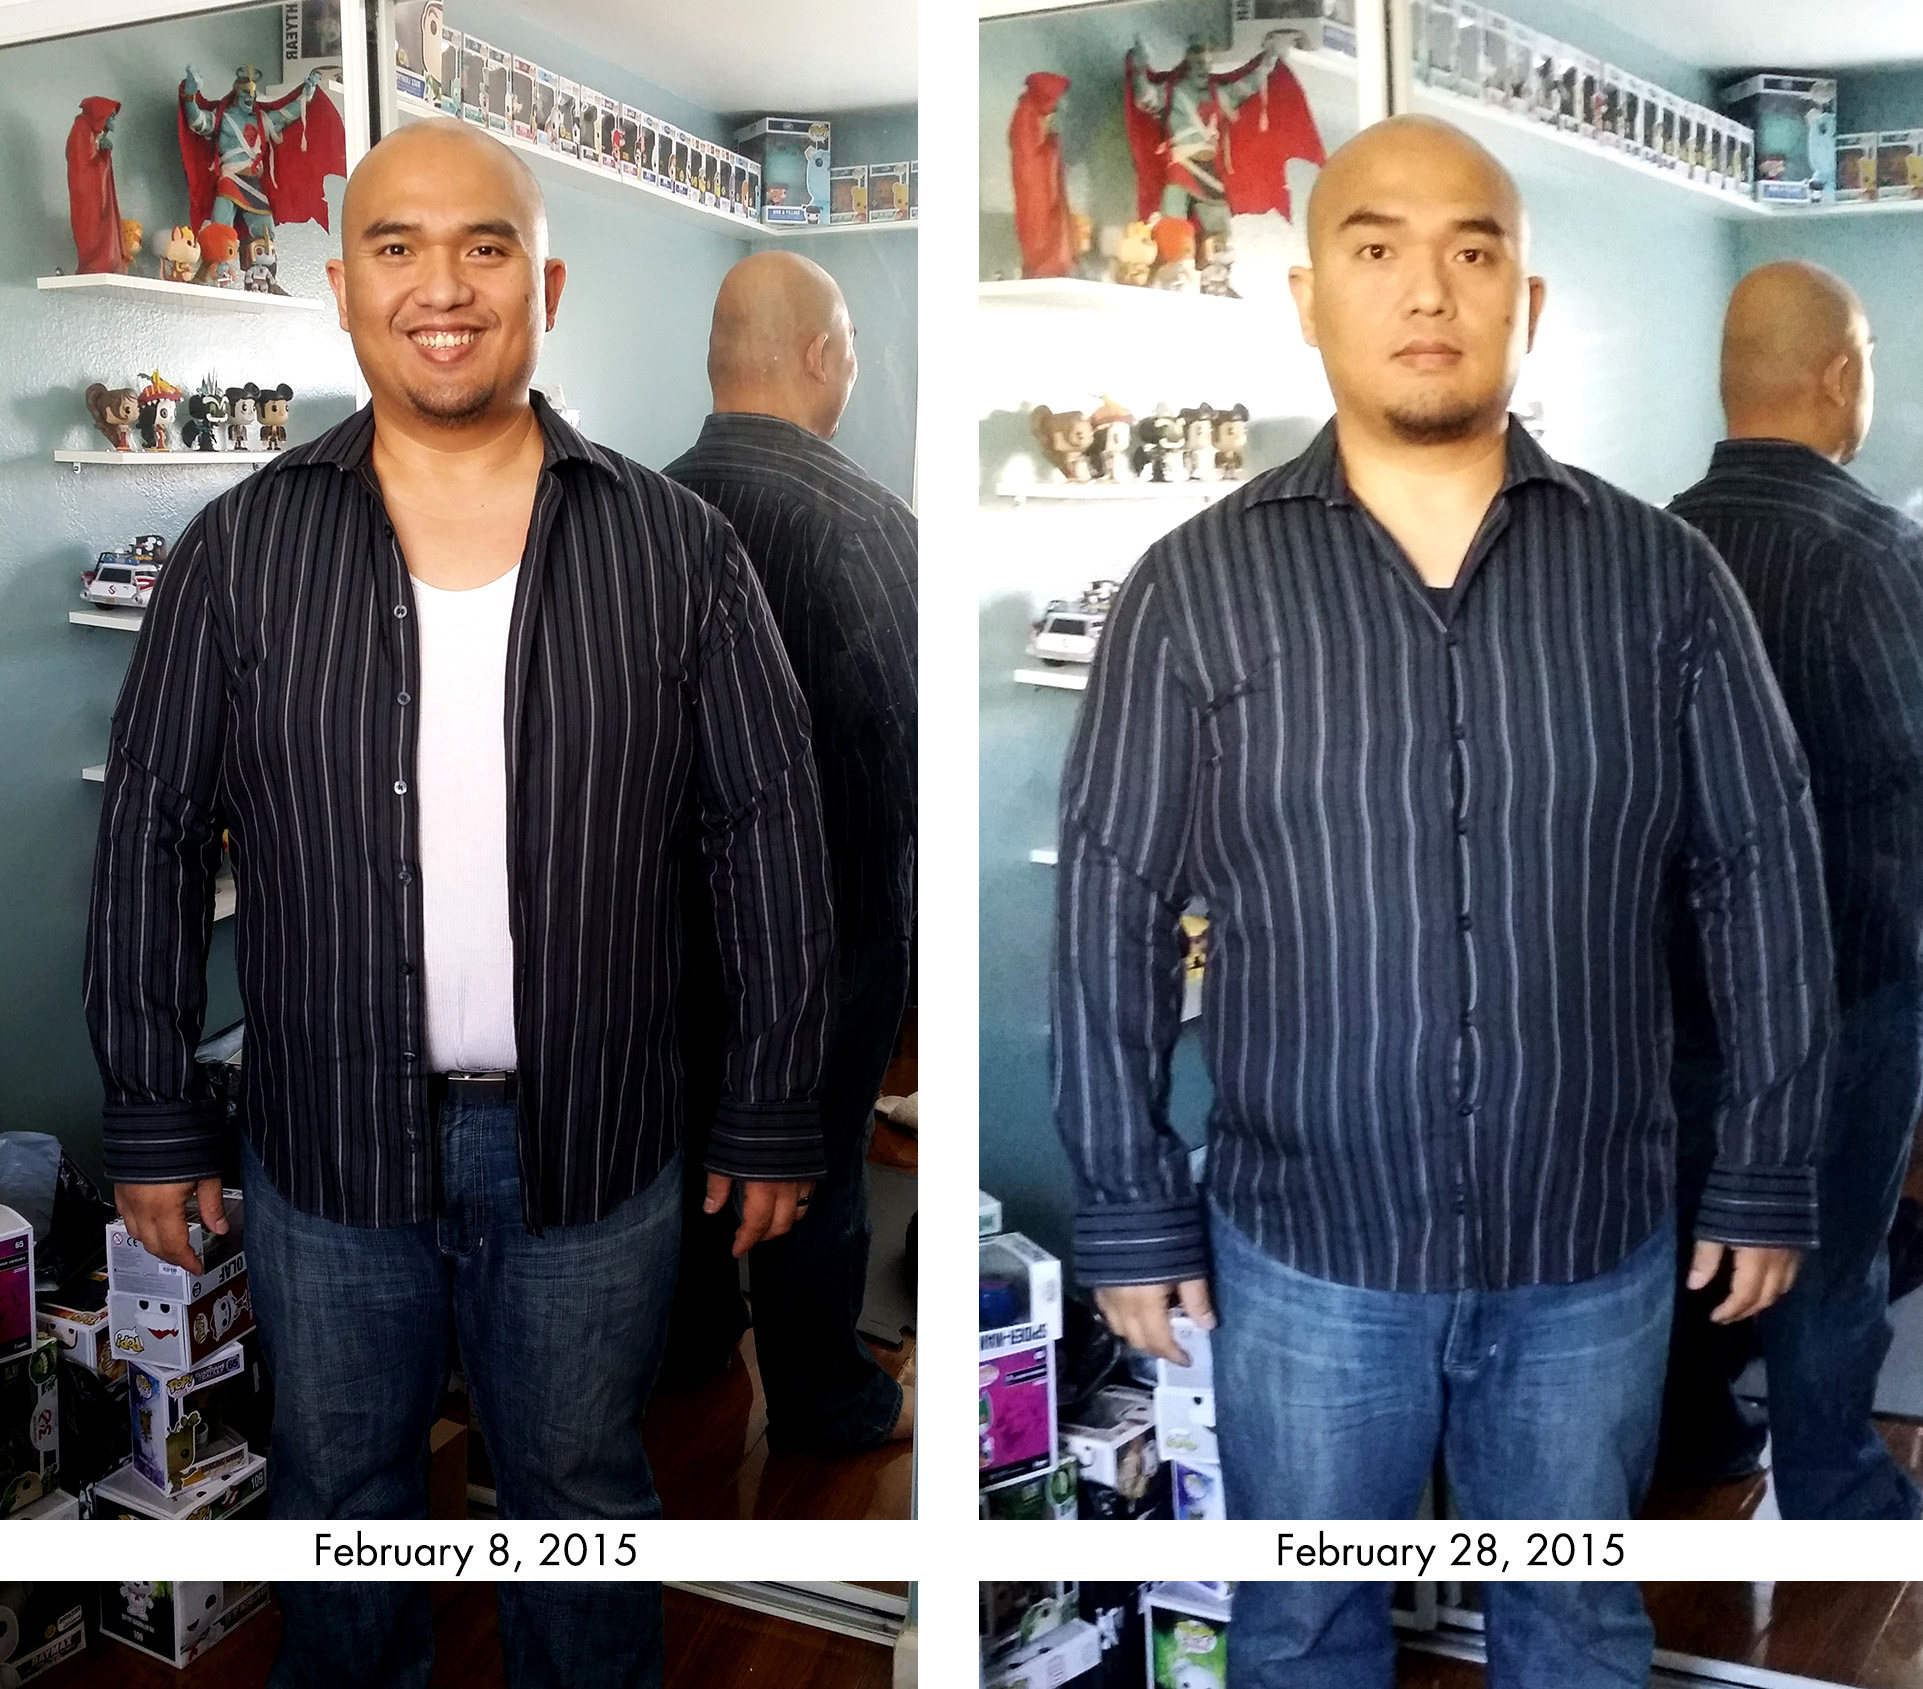 In the beginning of the month I was NOT able to button this shirt as seen on the left image. Today, the shirt is still snug as noted by the stressed buttons on the right image, but at least I can button it up. I last wore this shirt in 2007 when I was a lot more active and skinnier. I kept this shirt along with a few others  as a reminder/inspiration that I will once again fit into this shirt.